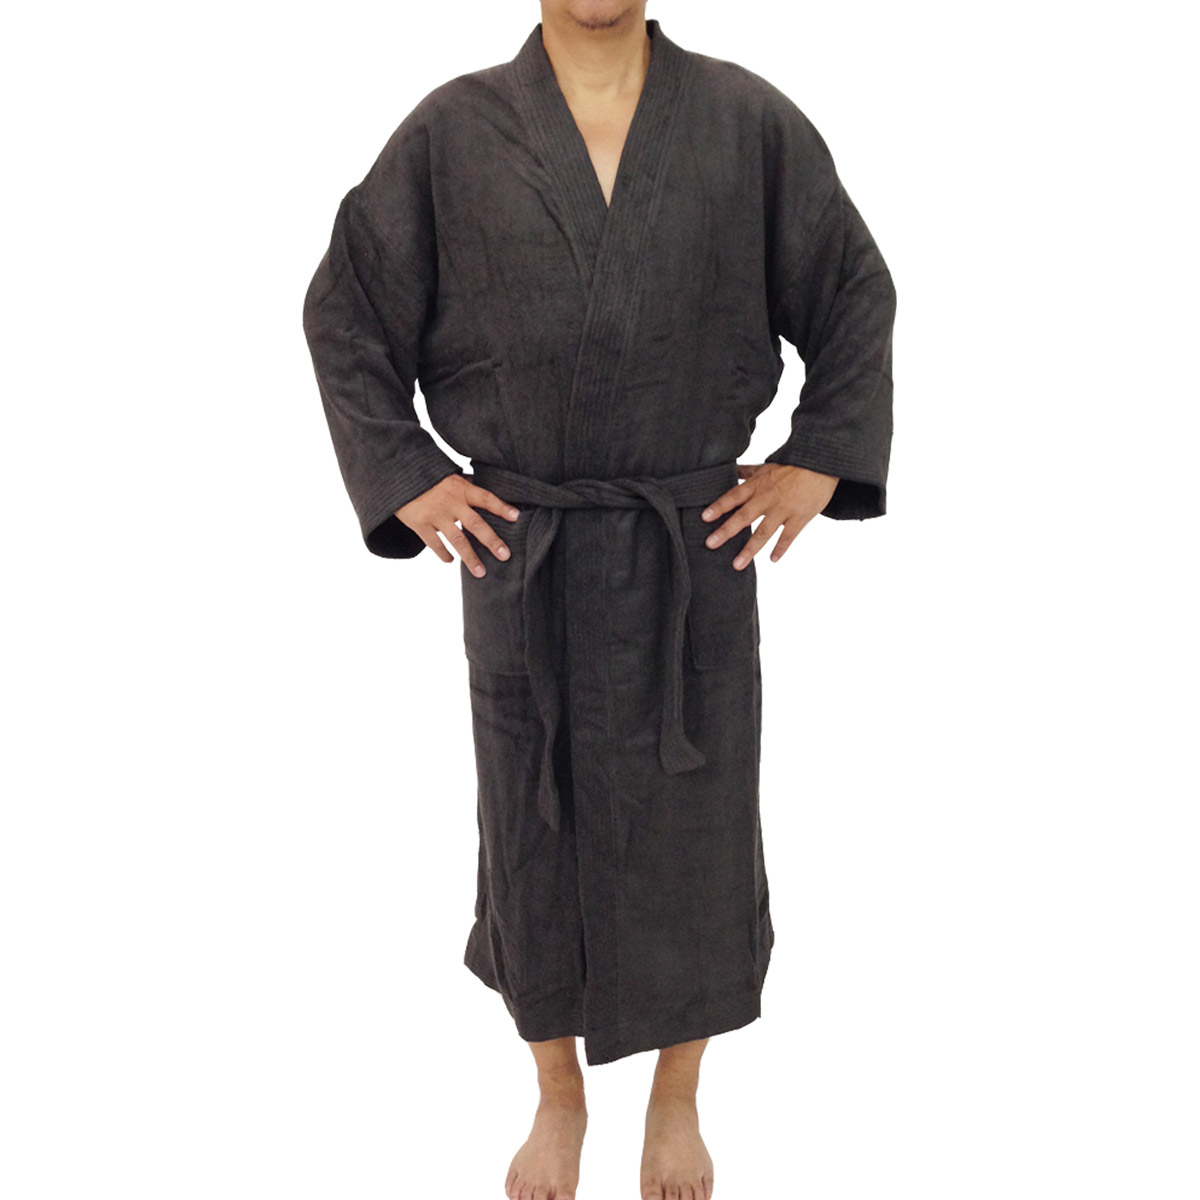 Bamboo Unisex Bathrobes - Charcoal